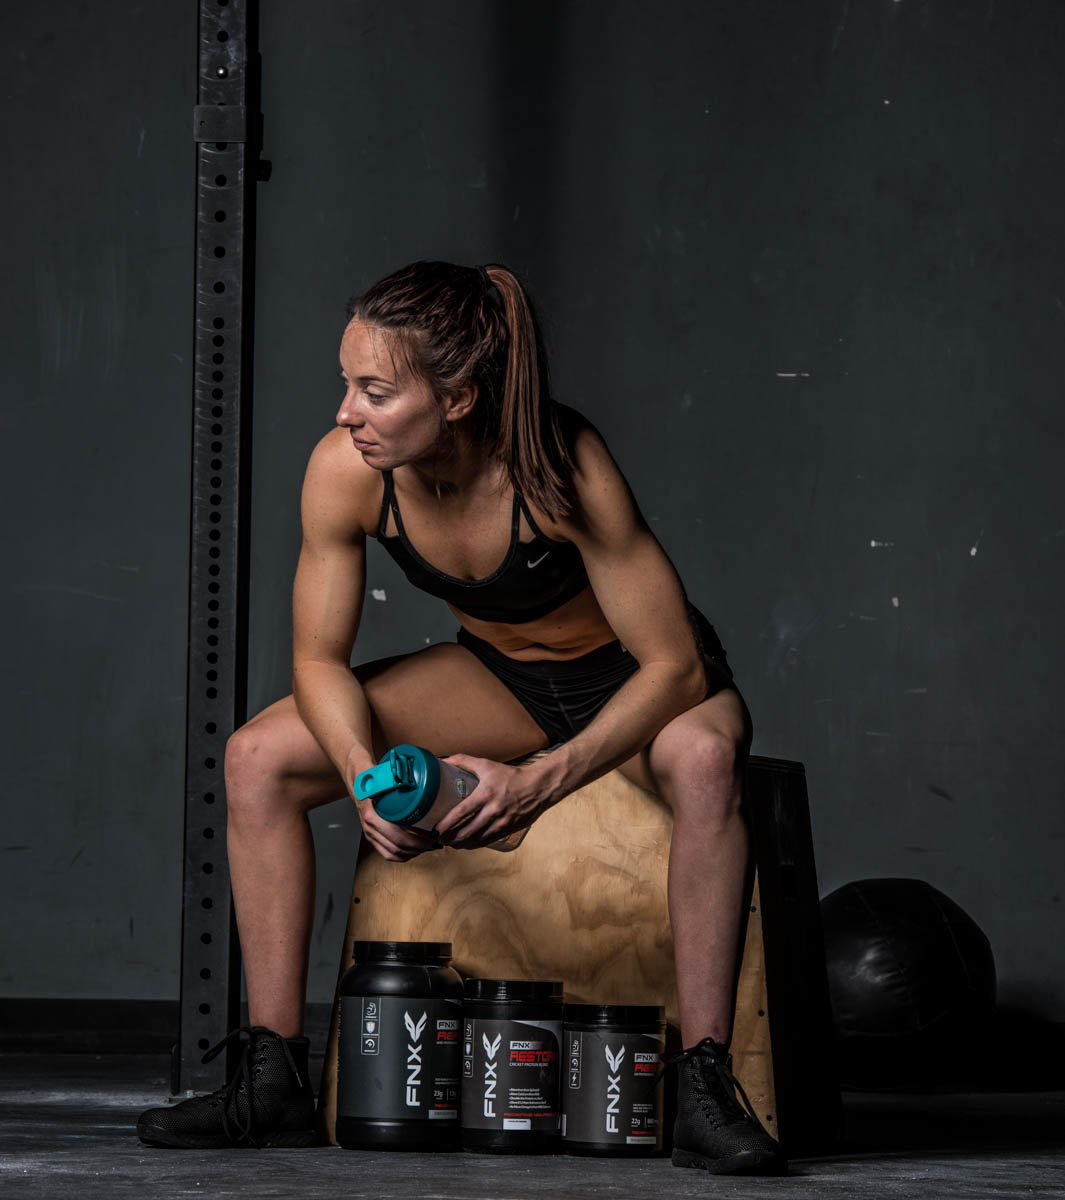 Kattie_Hoffman_Crossfit_Jamal_Hardman_Photographer (9 of 13)